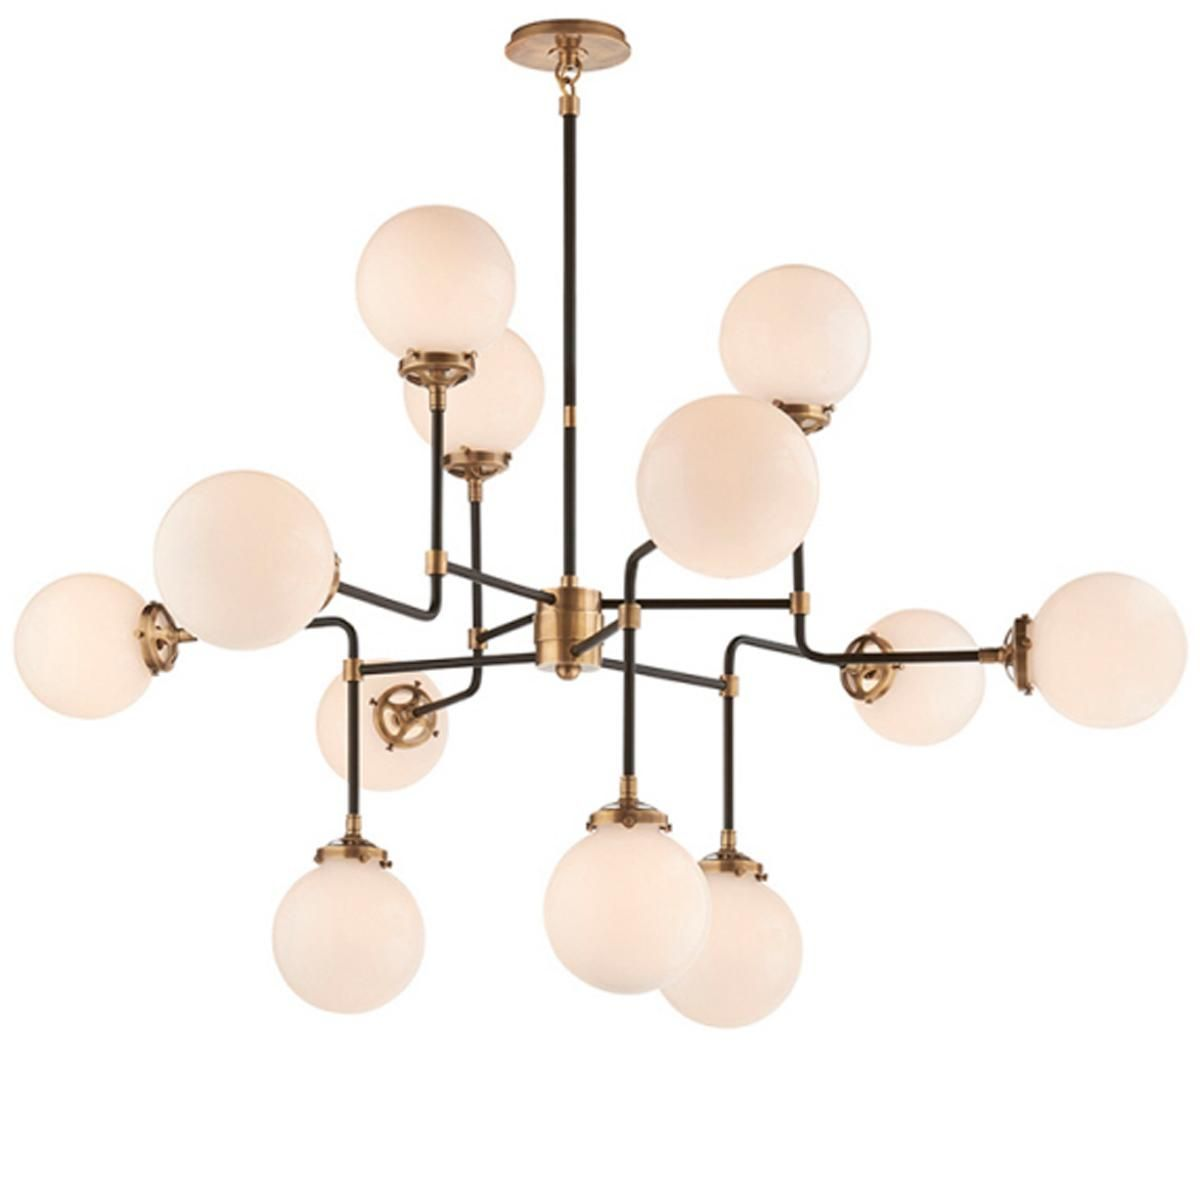 Tips to buy a proper desk lamps lighting and chandeliers - Mid Century Parlor Chandelier This Chandelier Is Incredibly Stylish And Architecturally Inspired Its Airy Room Lightswall